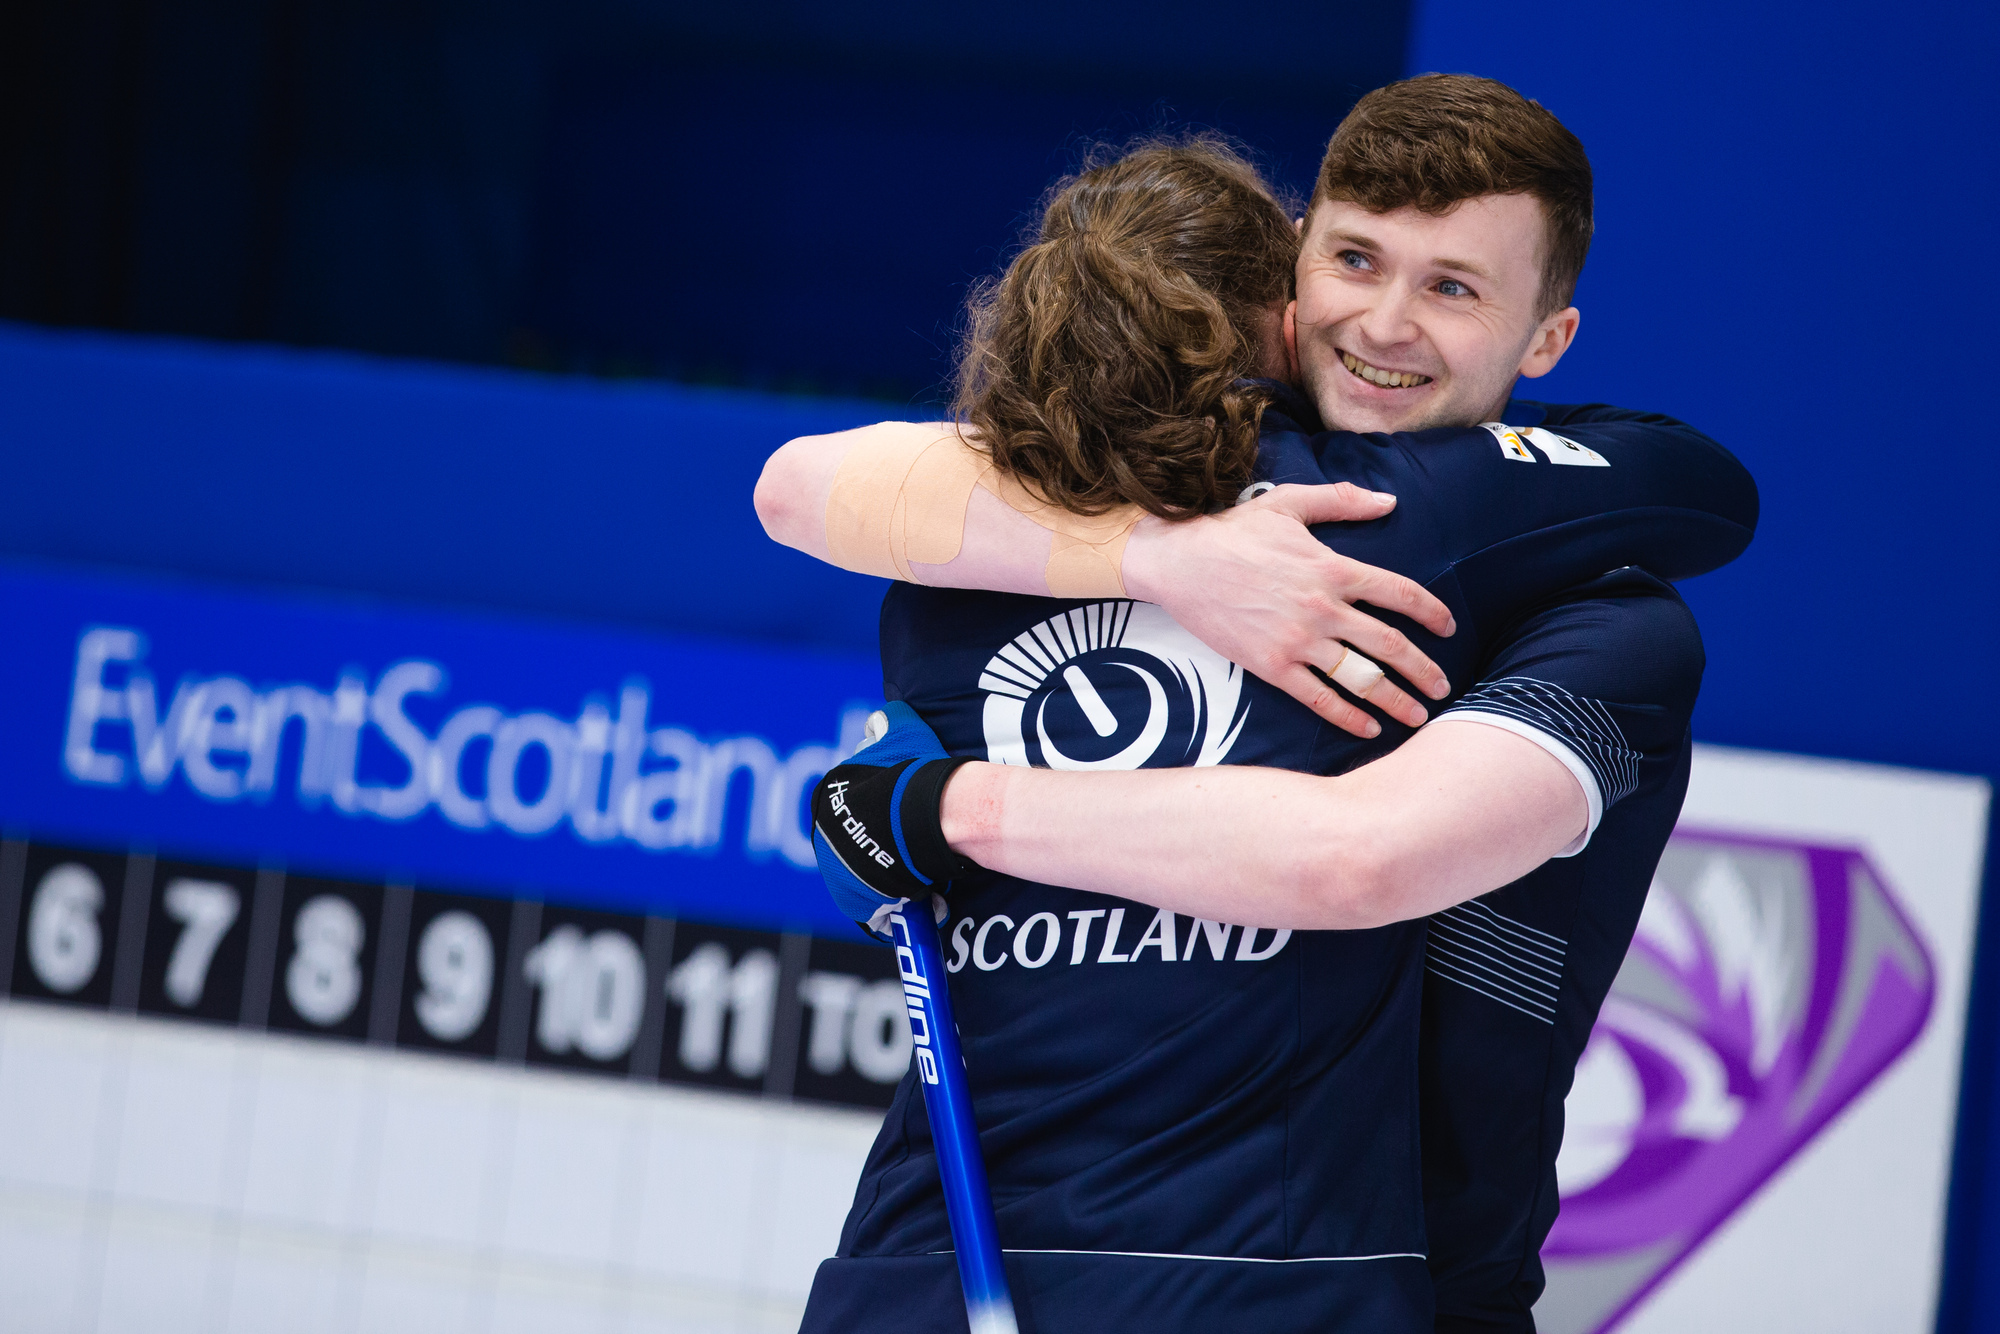 Scotland to face Norway for World Mixed Doubles gold medals - World Curling Federation